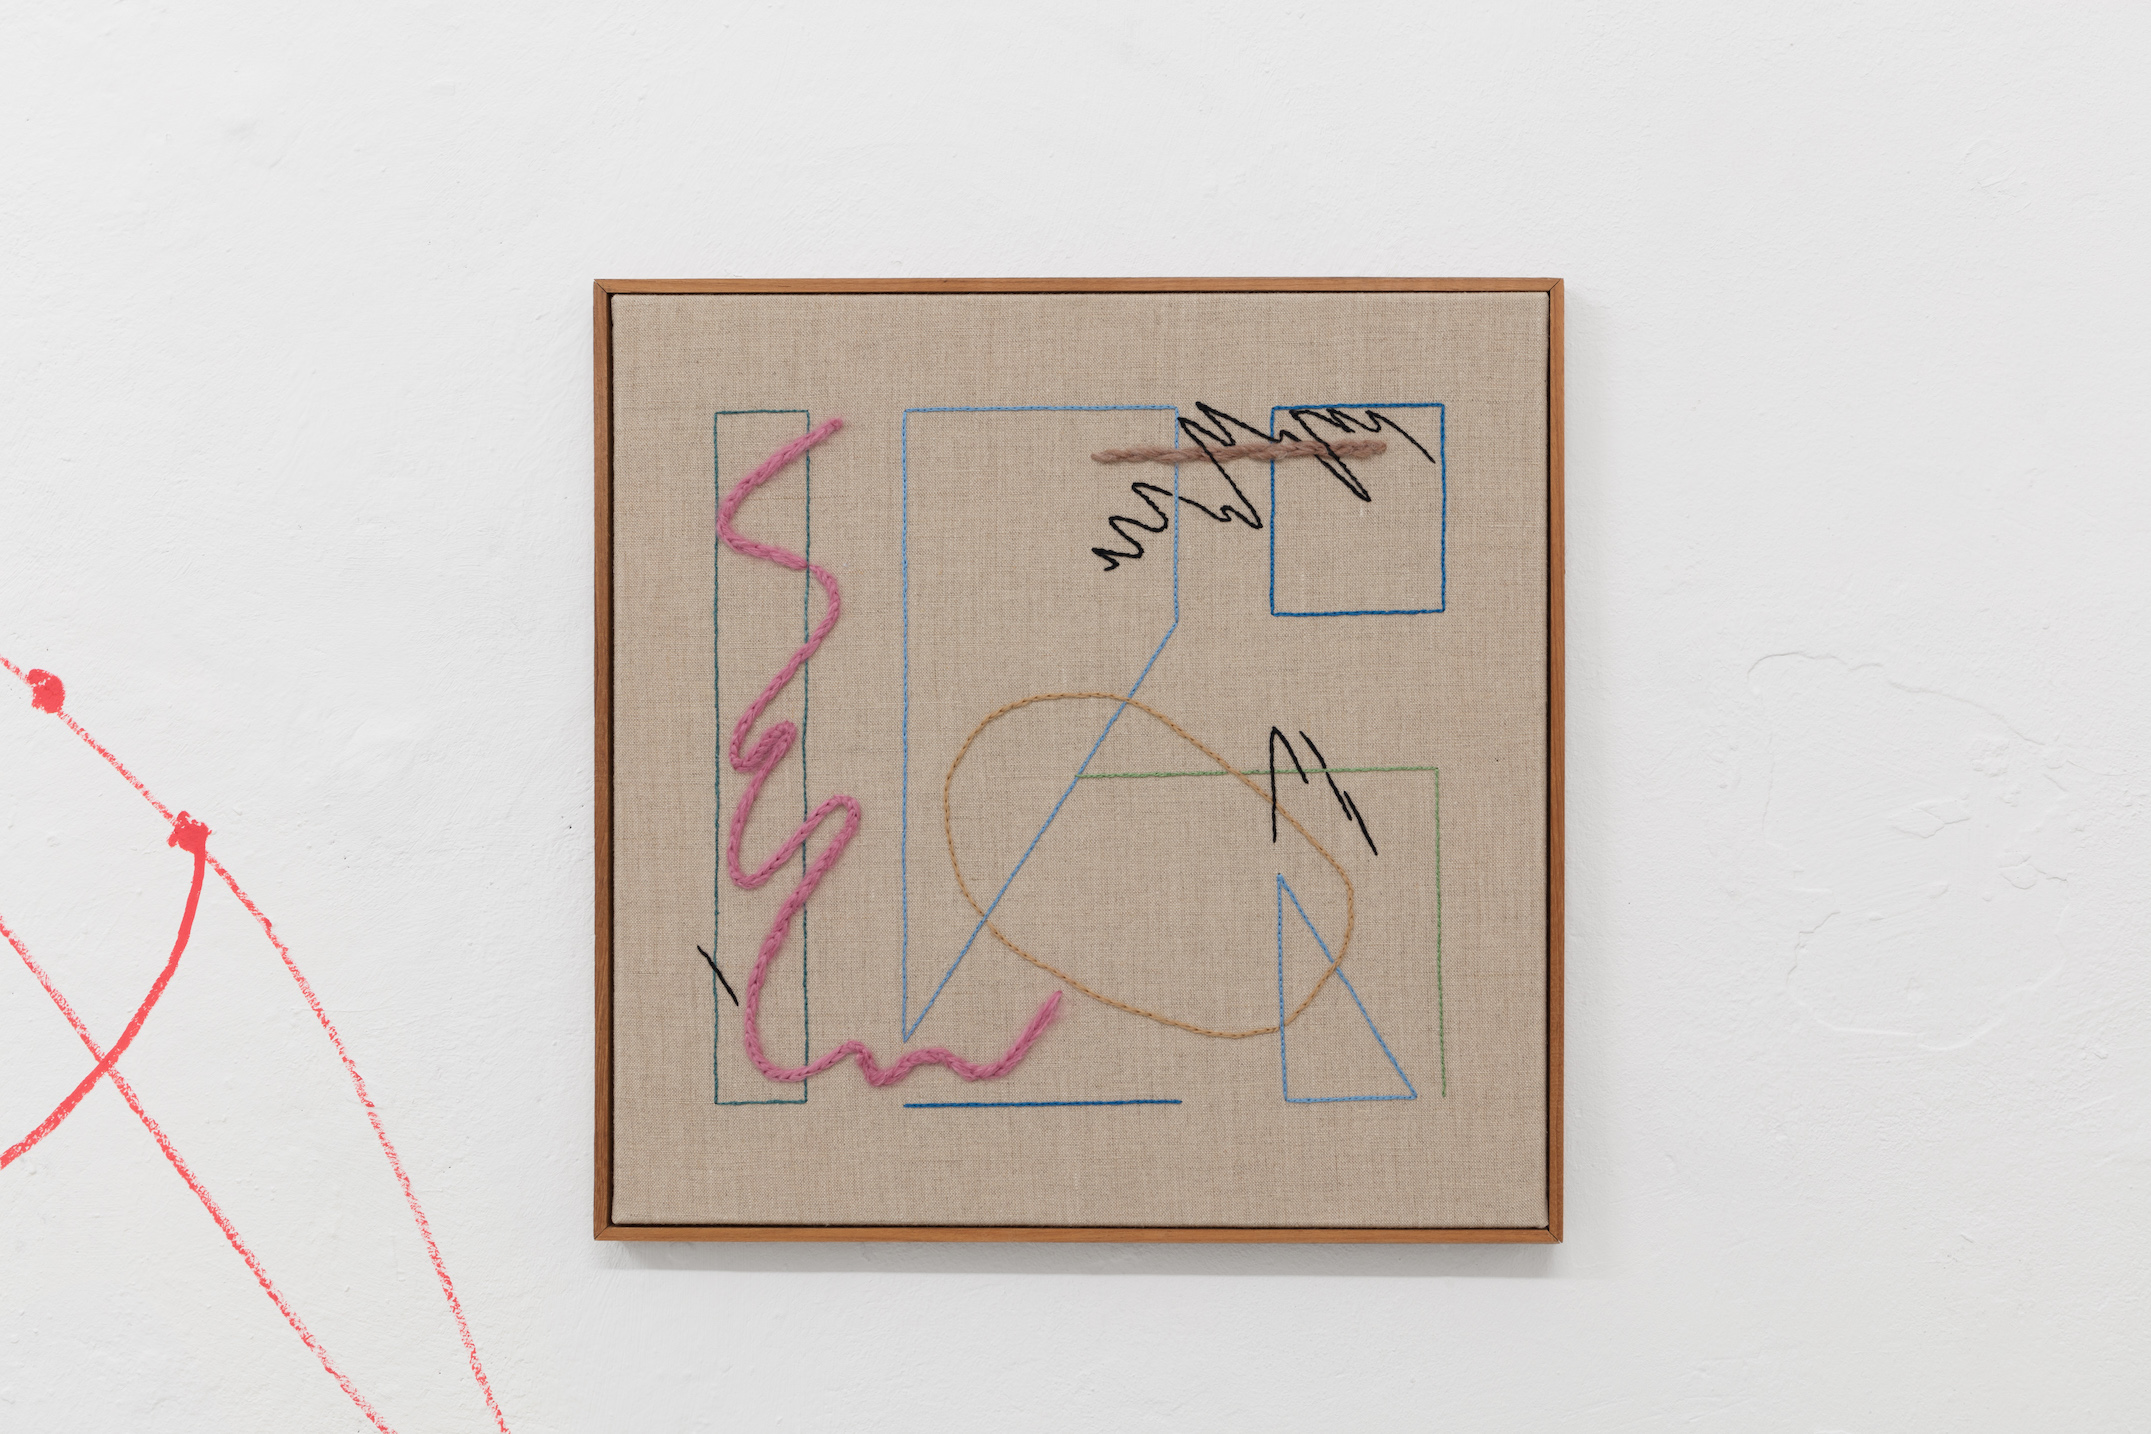 Nadine Byrne, Echoes (20), 2019, Embroidery on linen